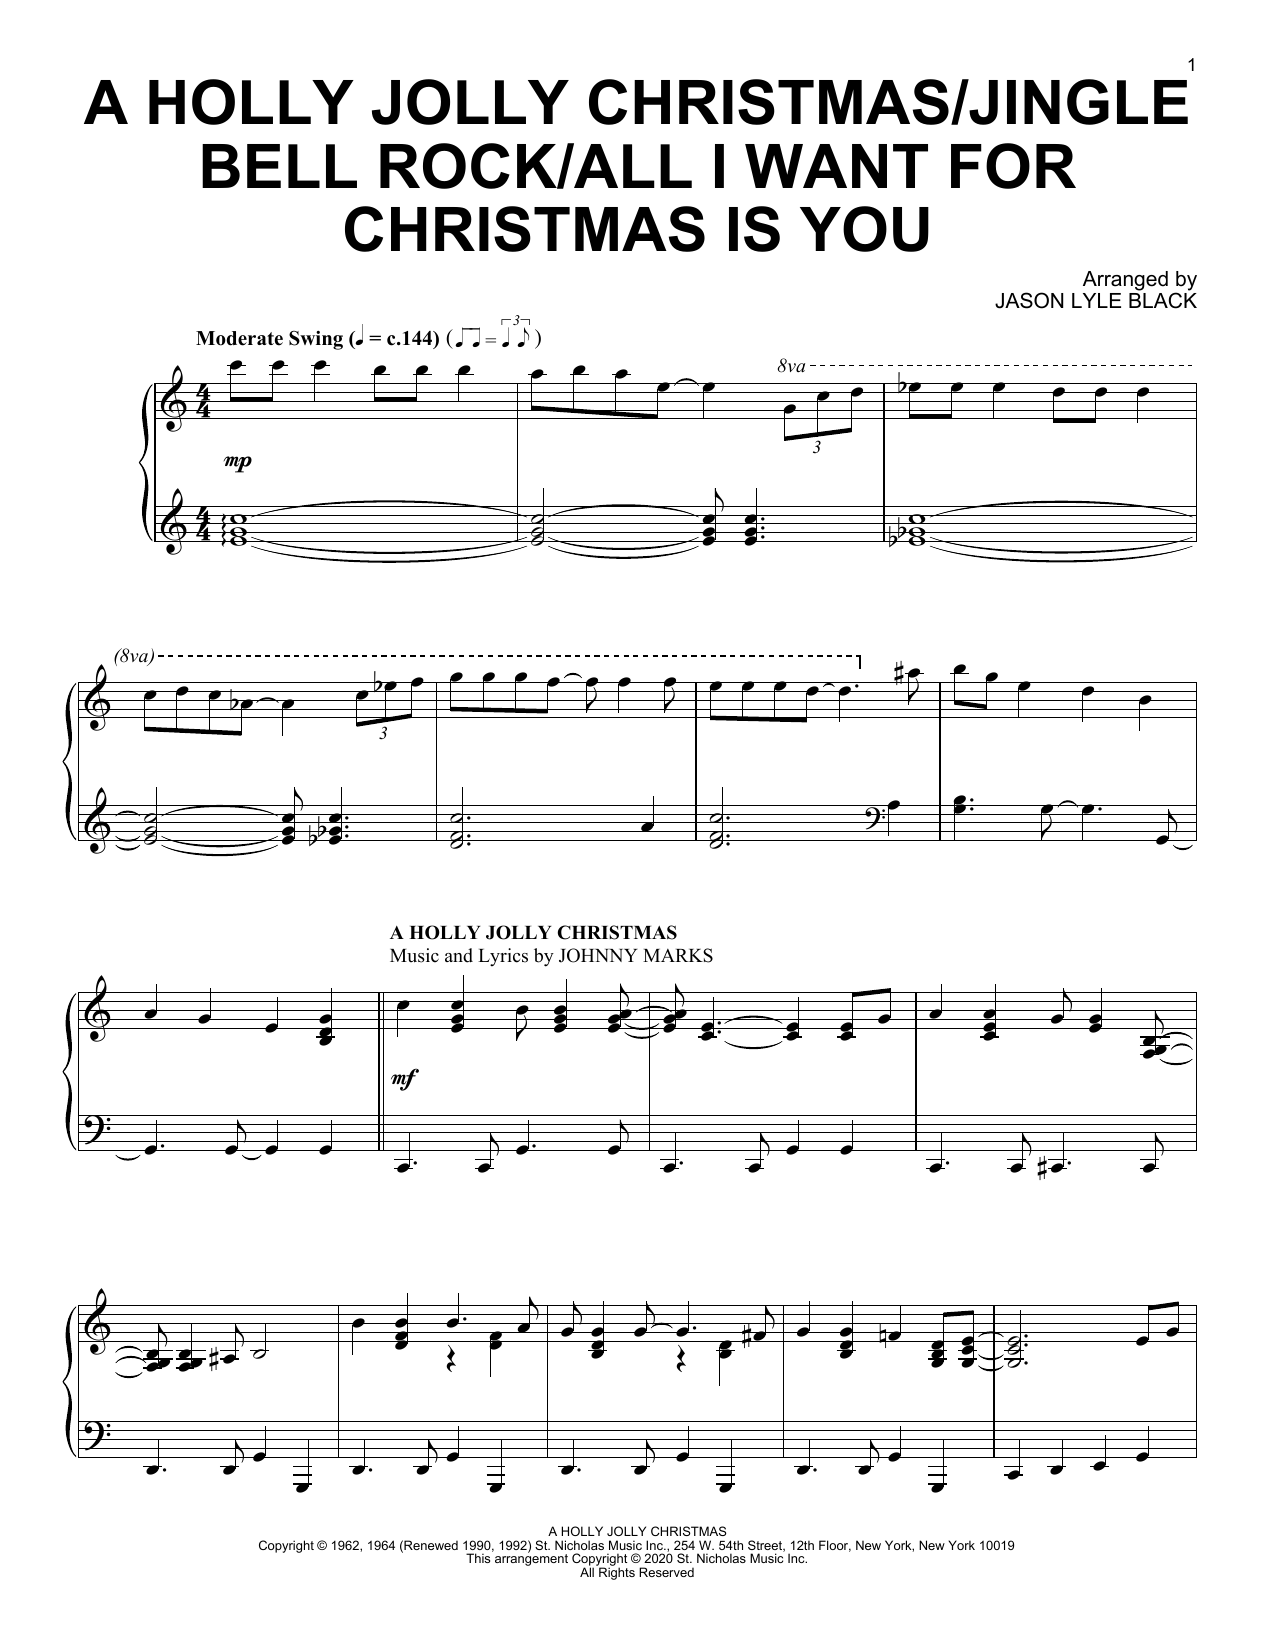 Jason Lyle Black A Holly Jolly Christmas/Jingle Bell Rock/All I Want For Christmas Is You sheet music notes and chords. Download Printable PDF.